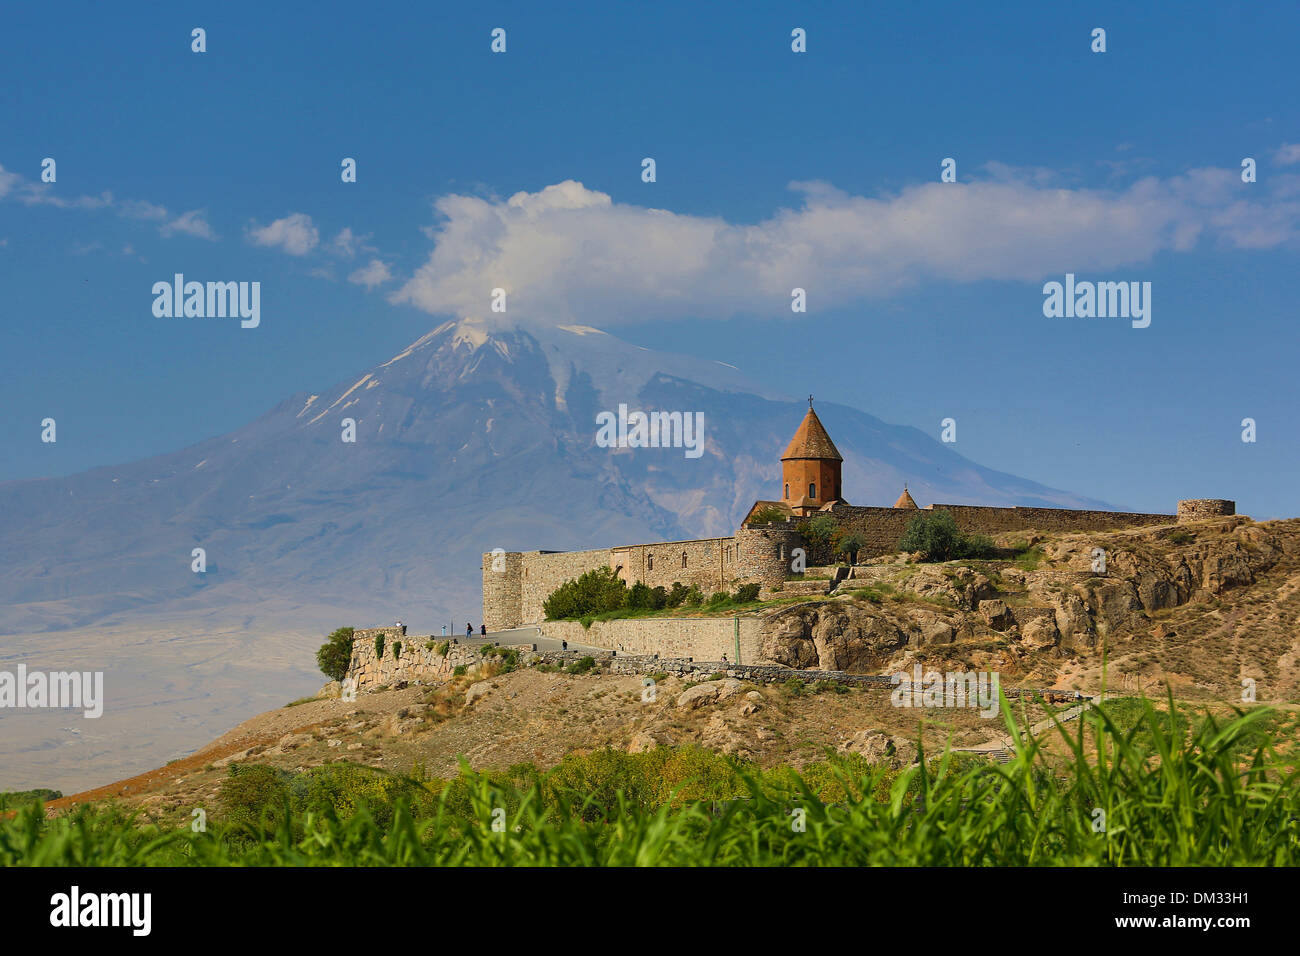 Armenia South Caucasus Caucasus Eurasia Khor Virap Lusarat Noe Ararat mountain architecture church history historical Stock Photo